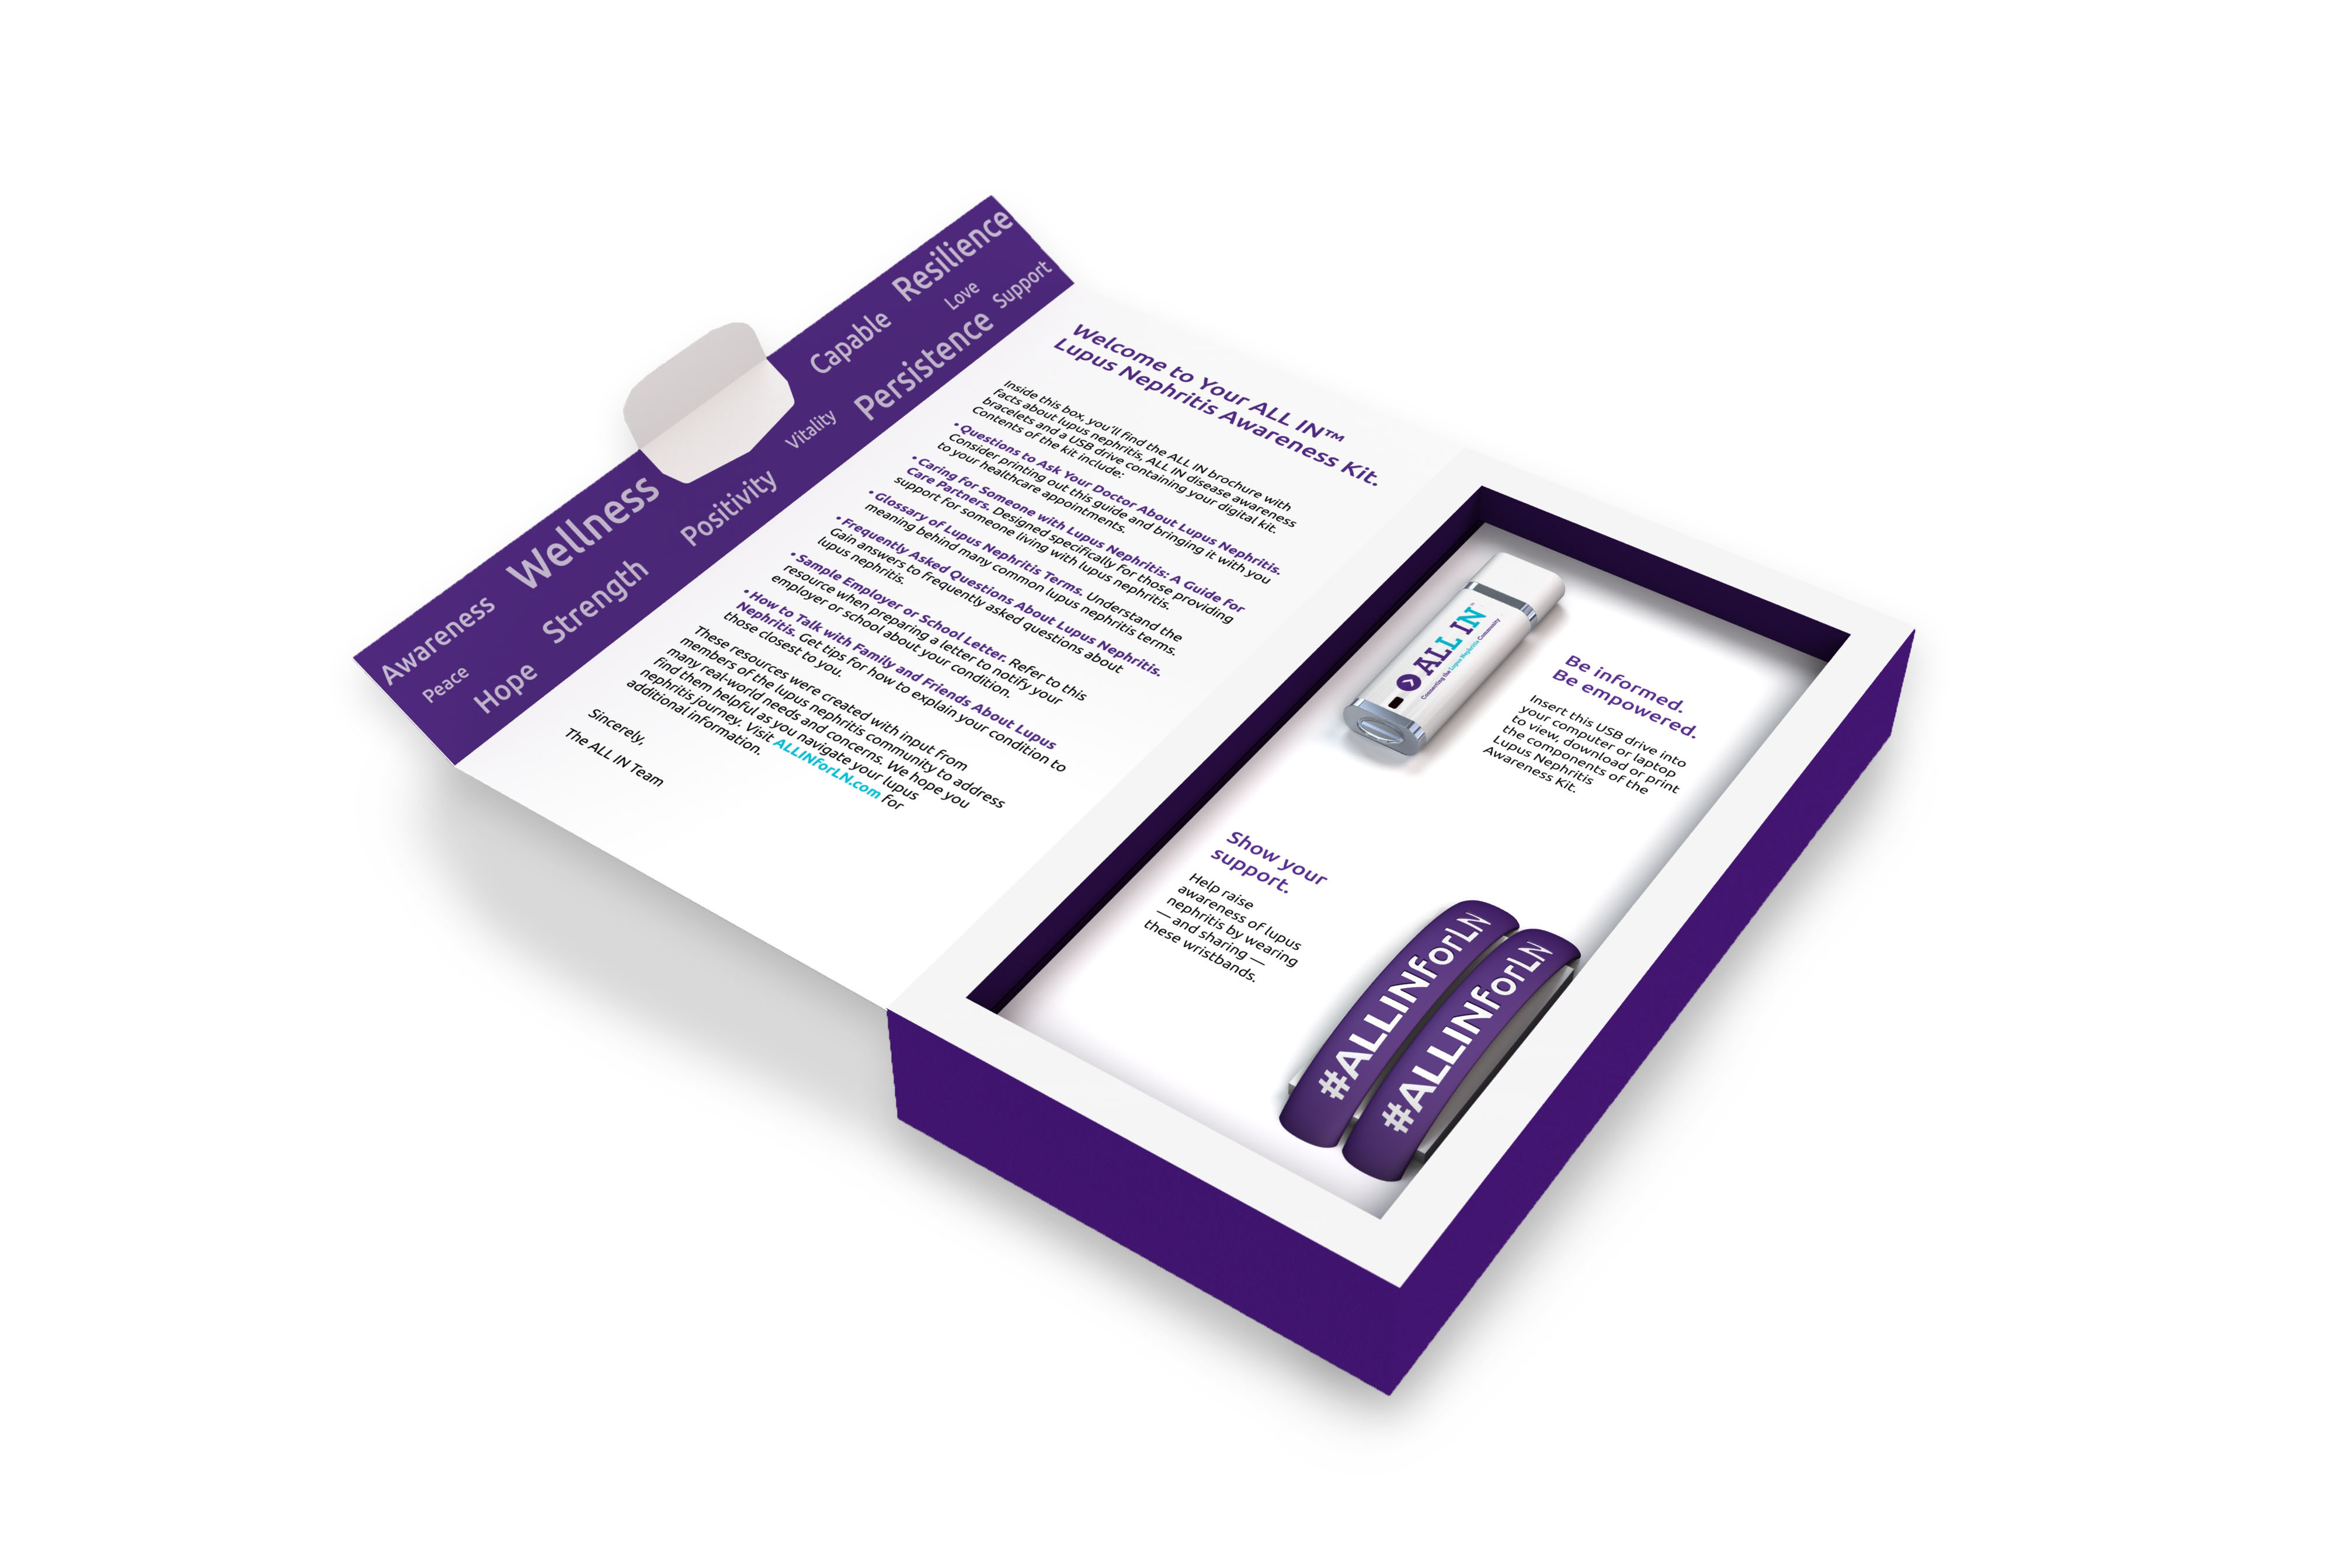 Be informed and empowered with the ALL IN™ Lupus Nephritis Awareness Kit